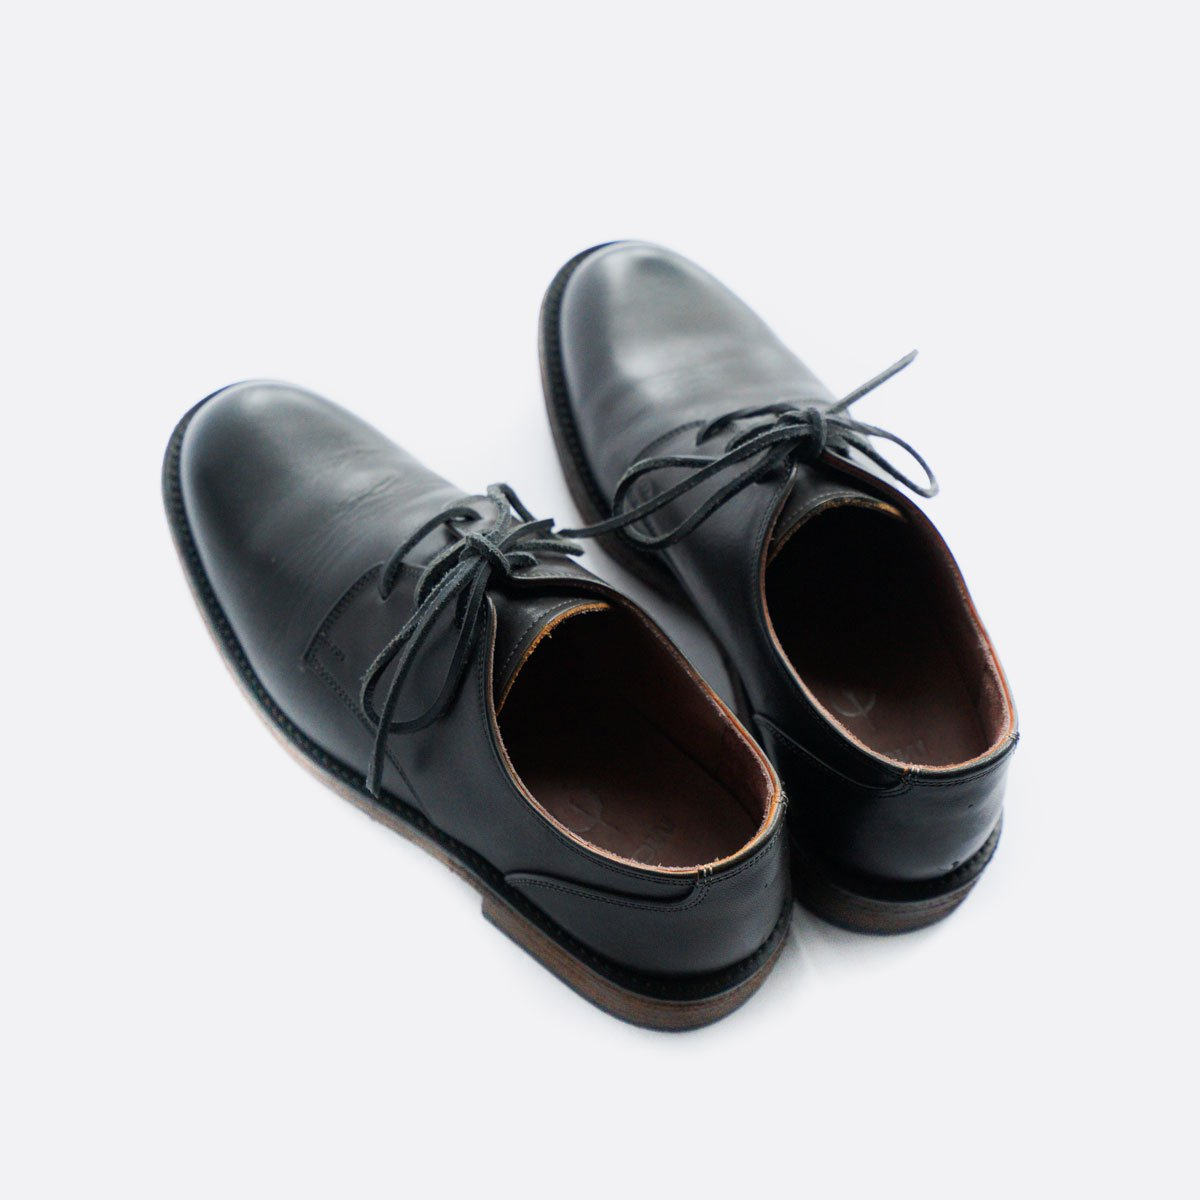 LEATHER&SILVER MOTO PLANE TOE OXFORD SHOES #1632(BLACK)4